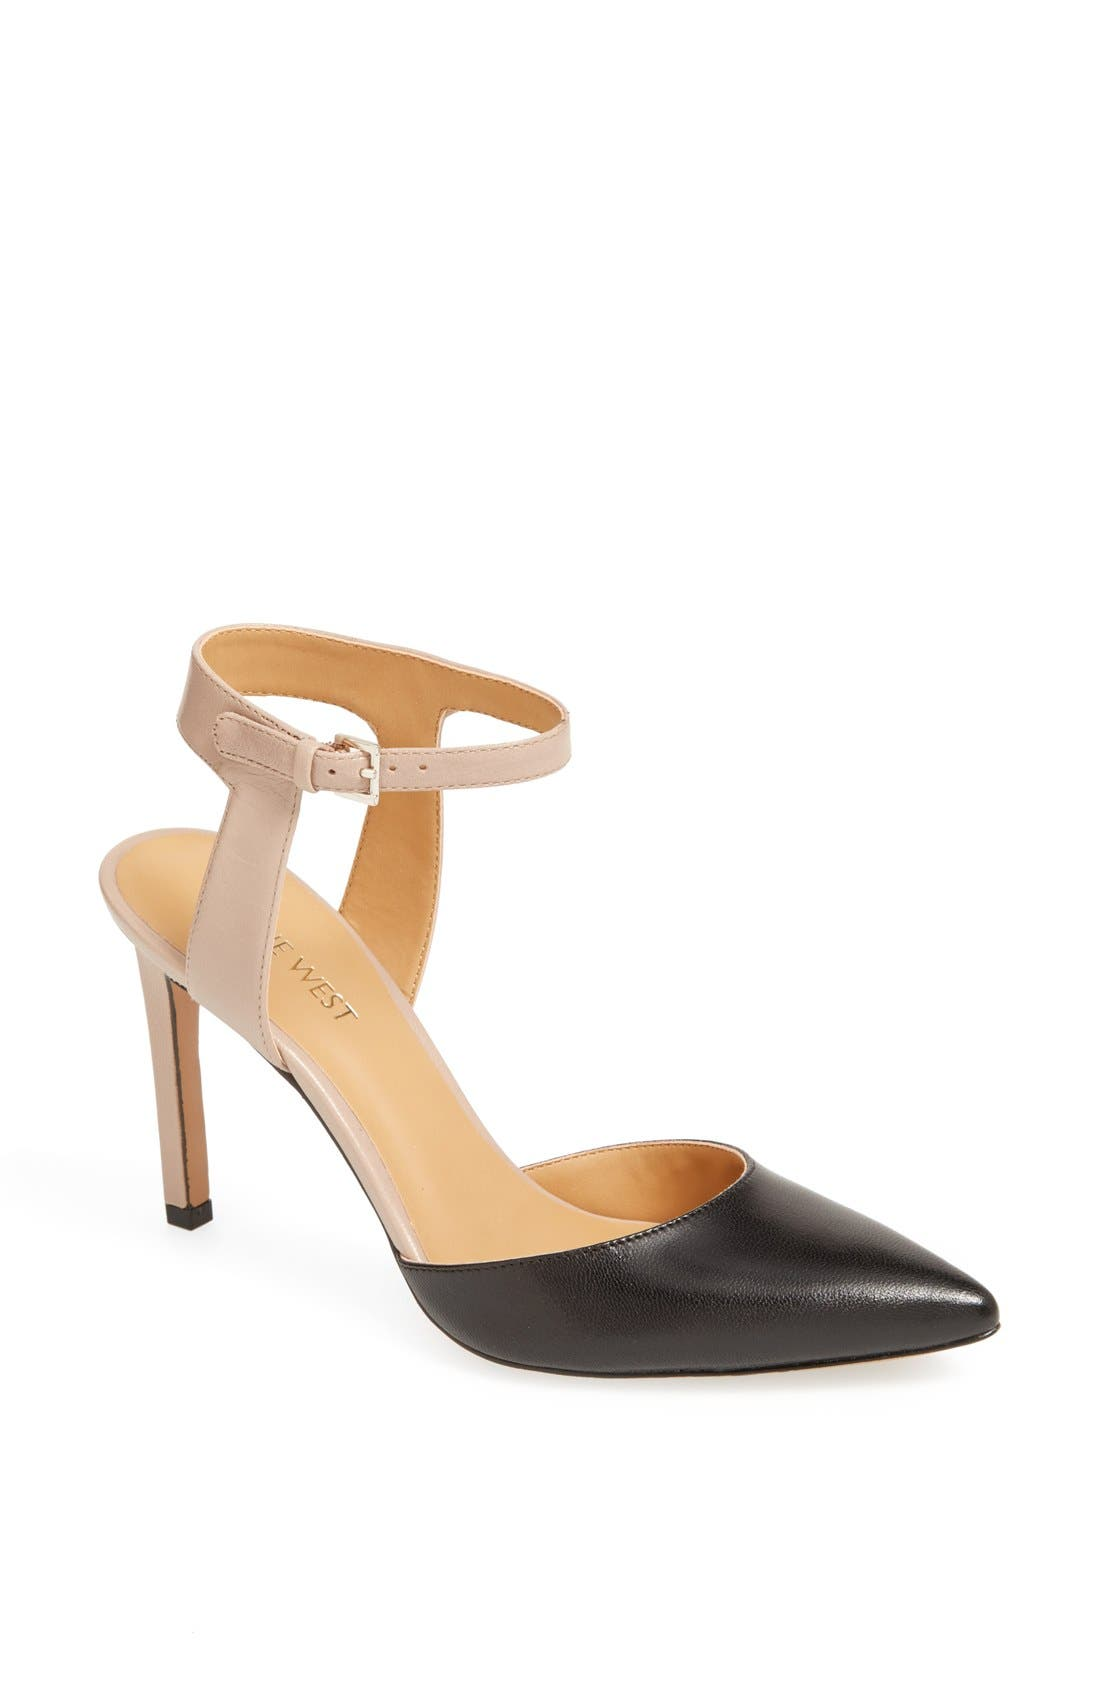 Main Image - Nine West 'Capricious' Pointy Toe Pump